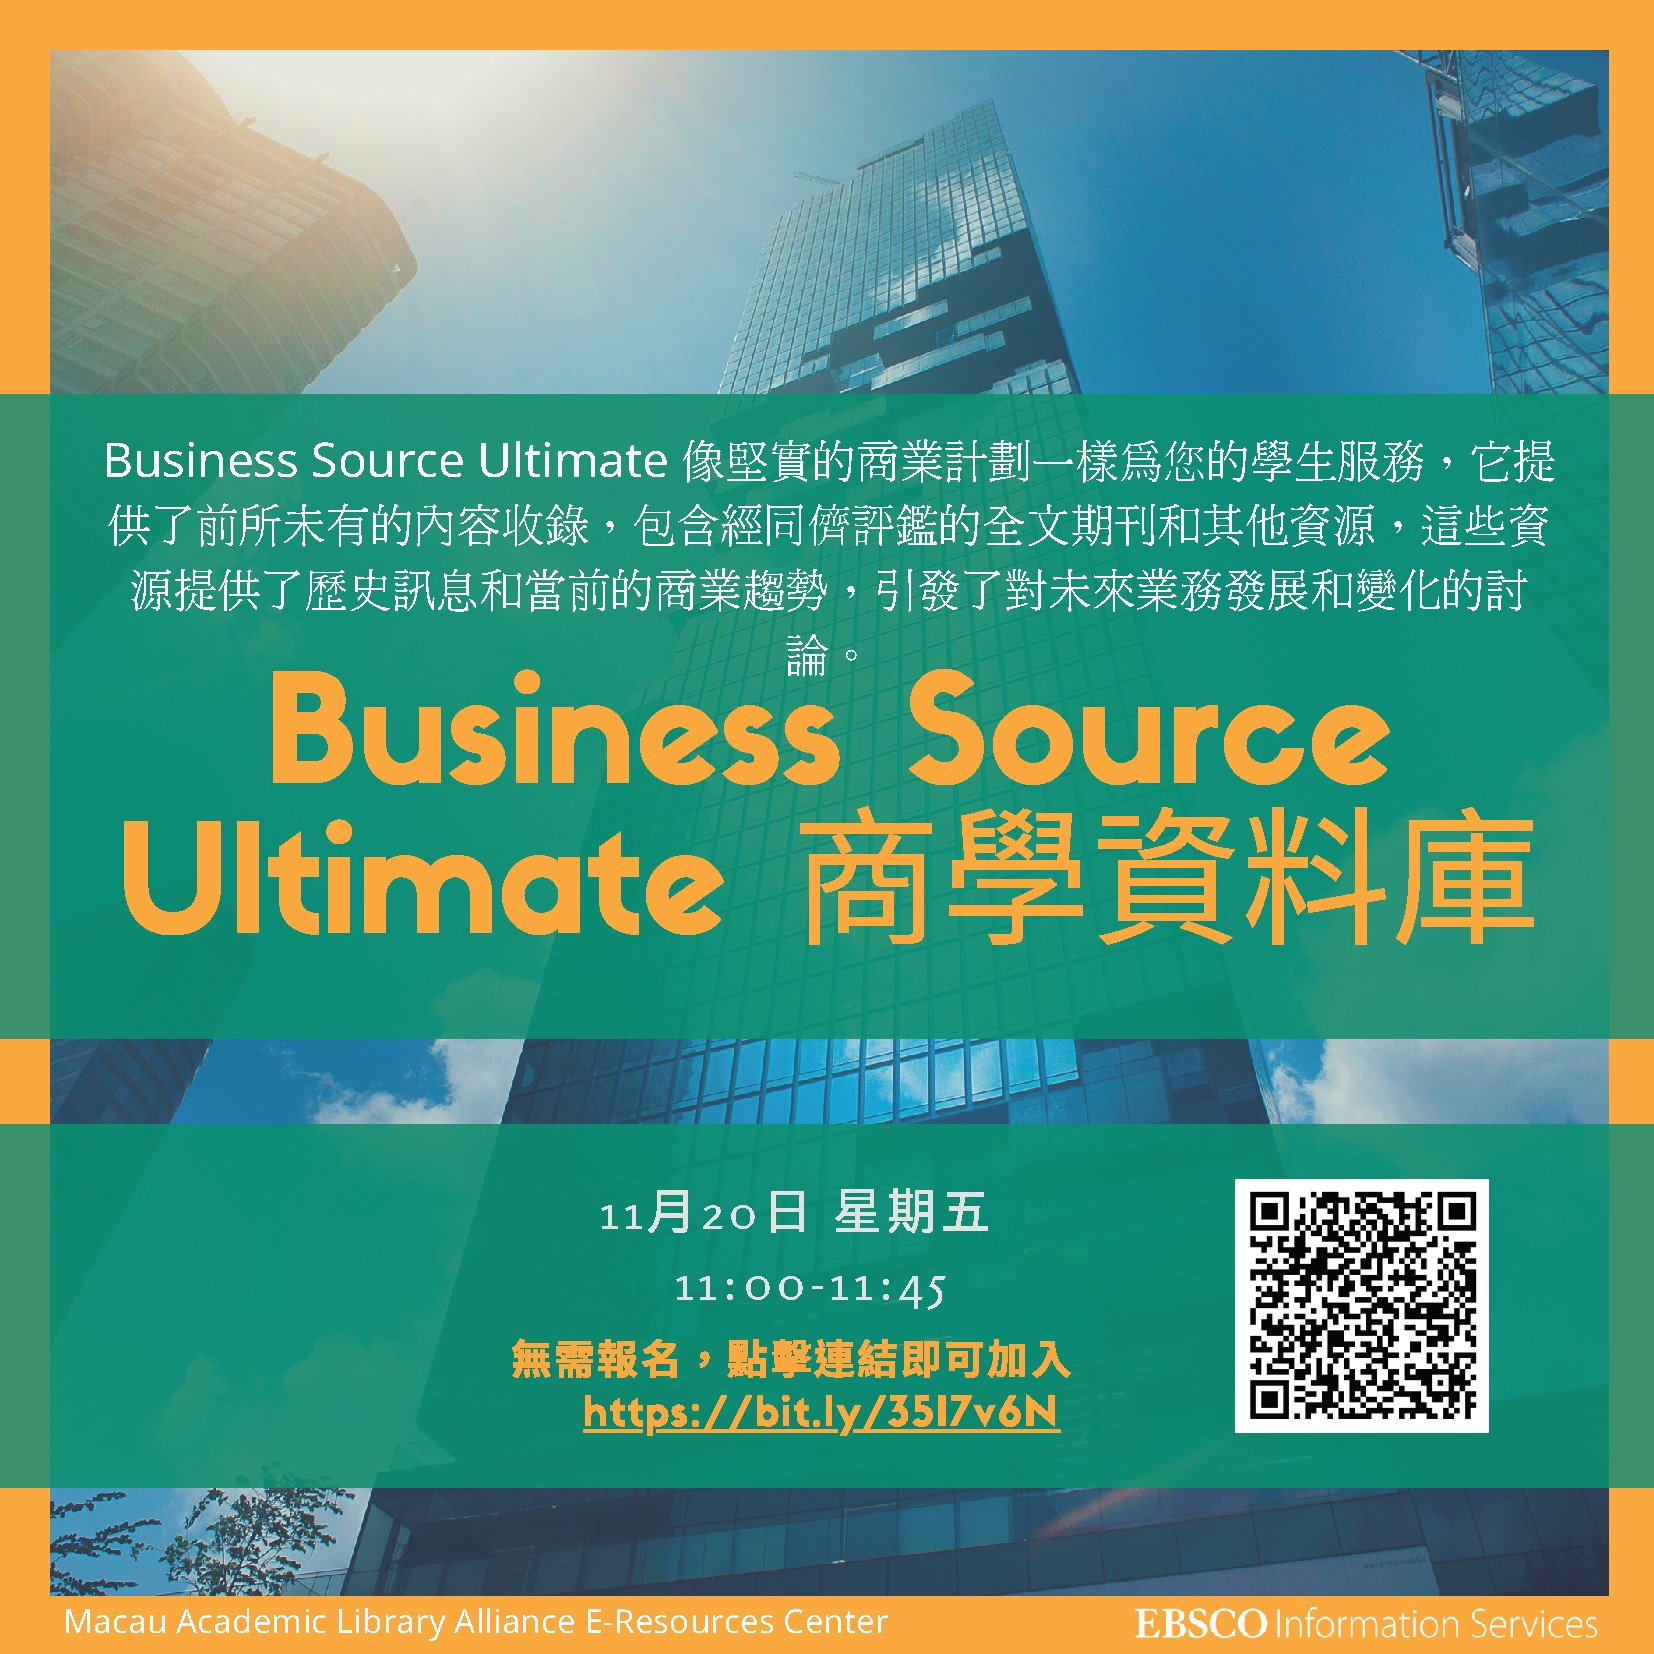 EBSCO Databases Online Training Sessions - Business Source Ultimate (Chinese Session)